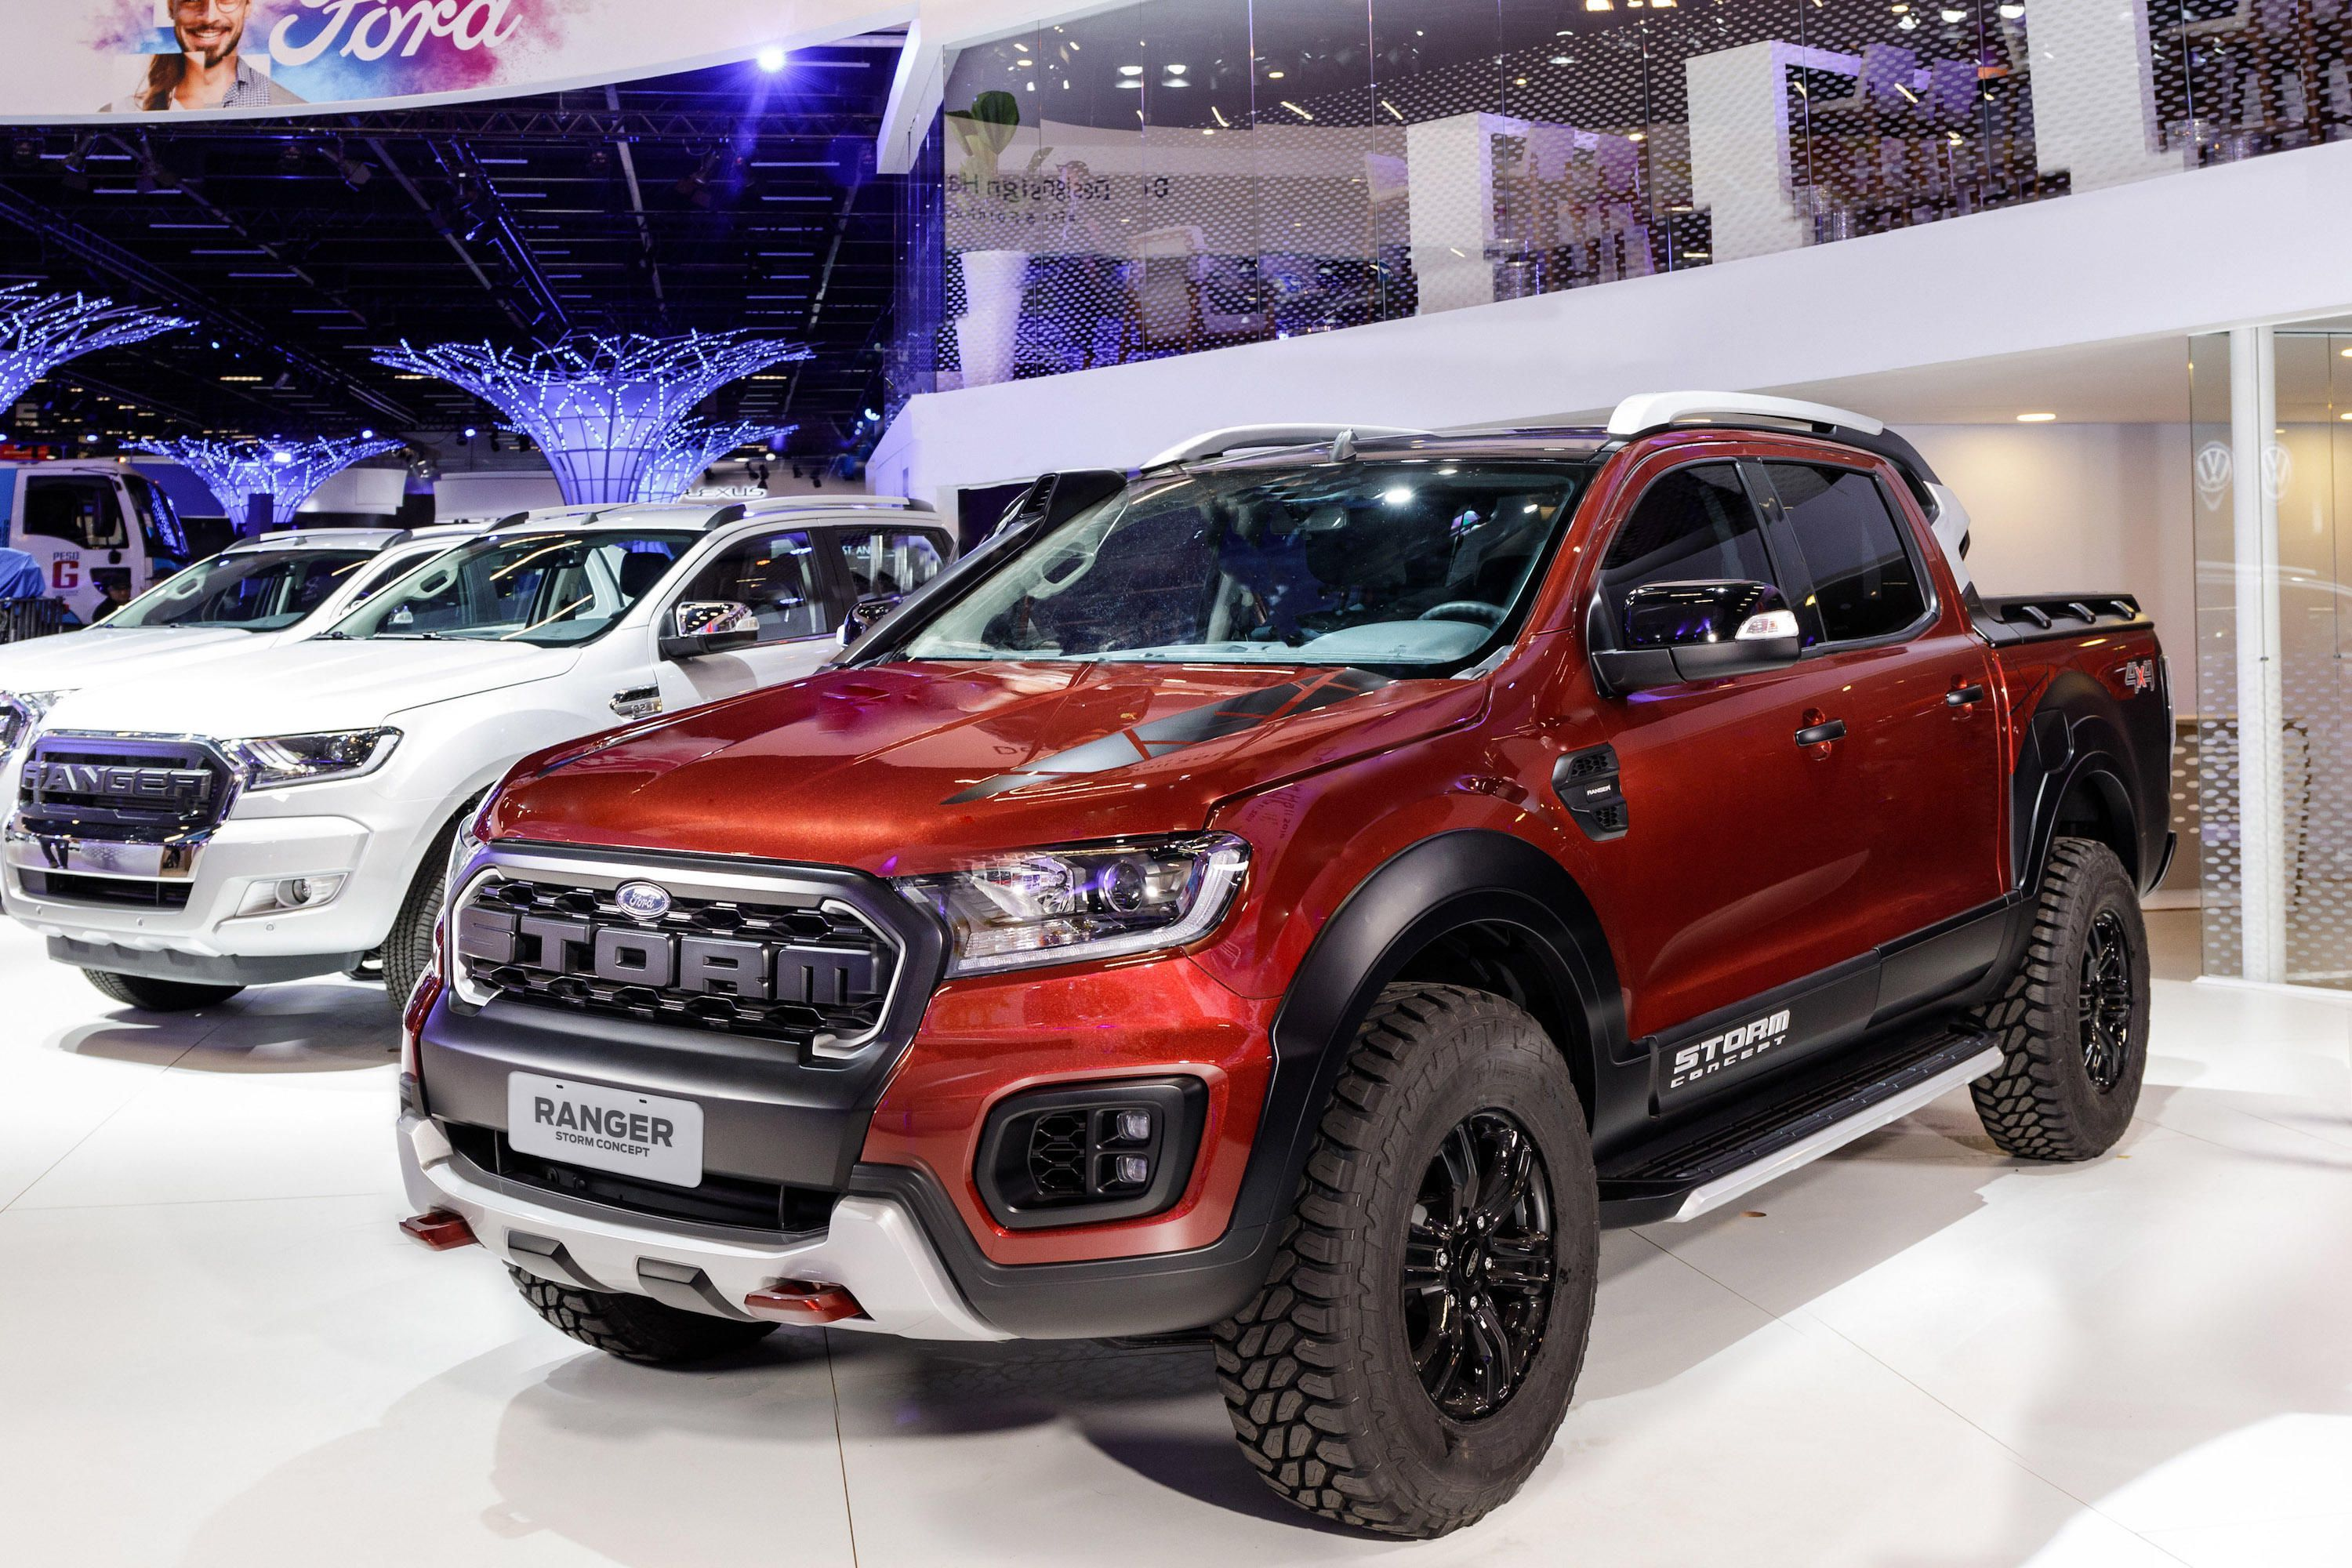 Ford S Ranger Storm Concept Is A Cheaper Raptor Lookalike That S